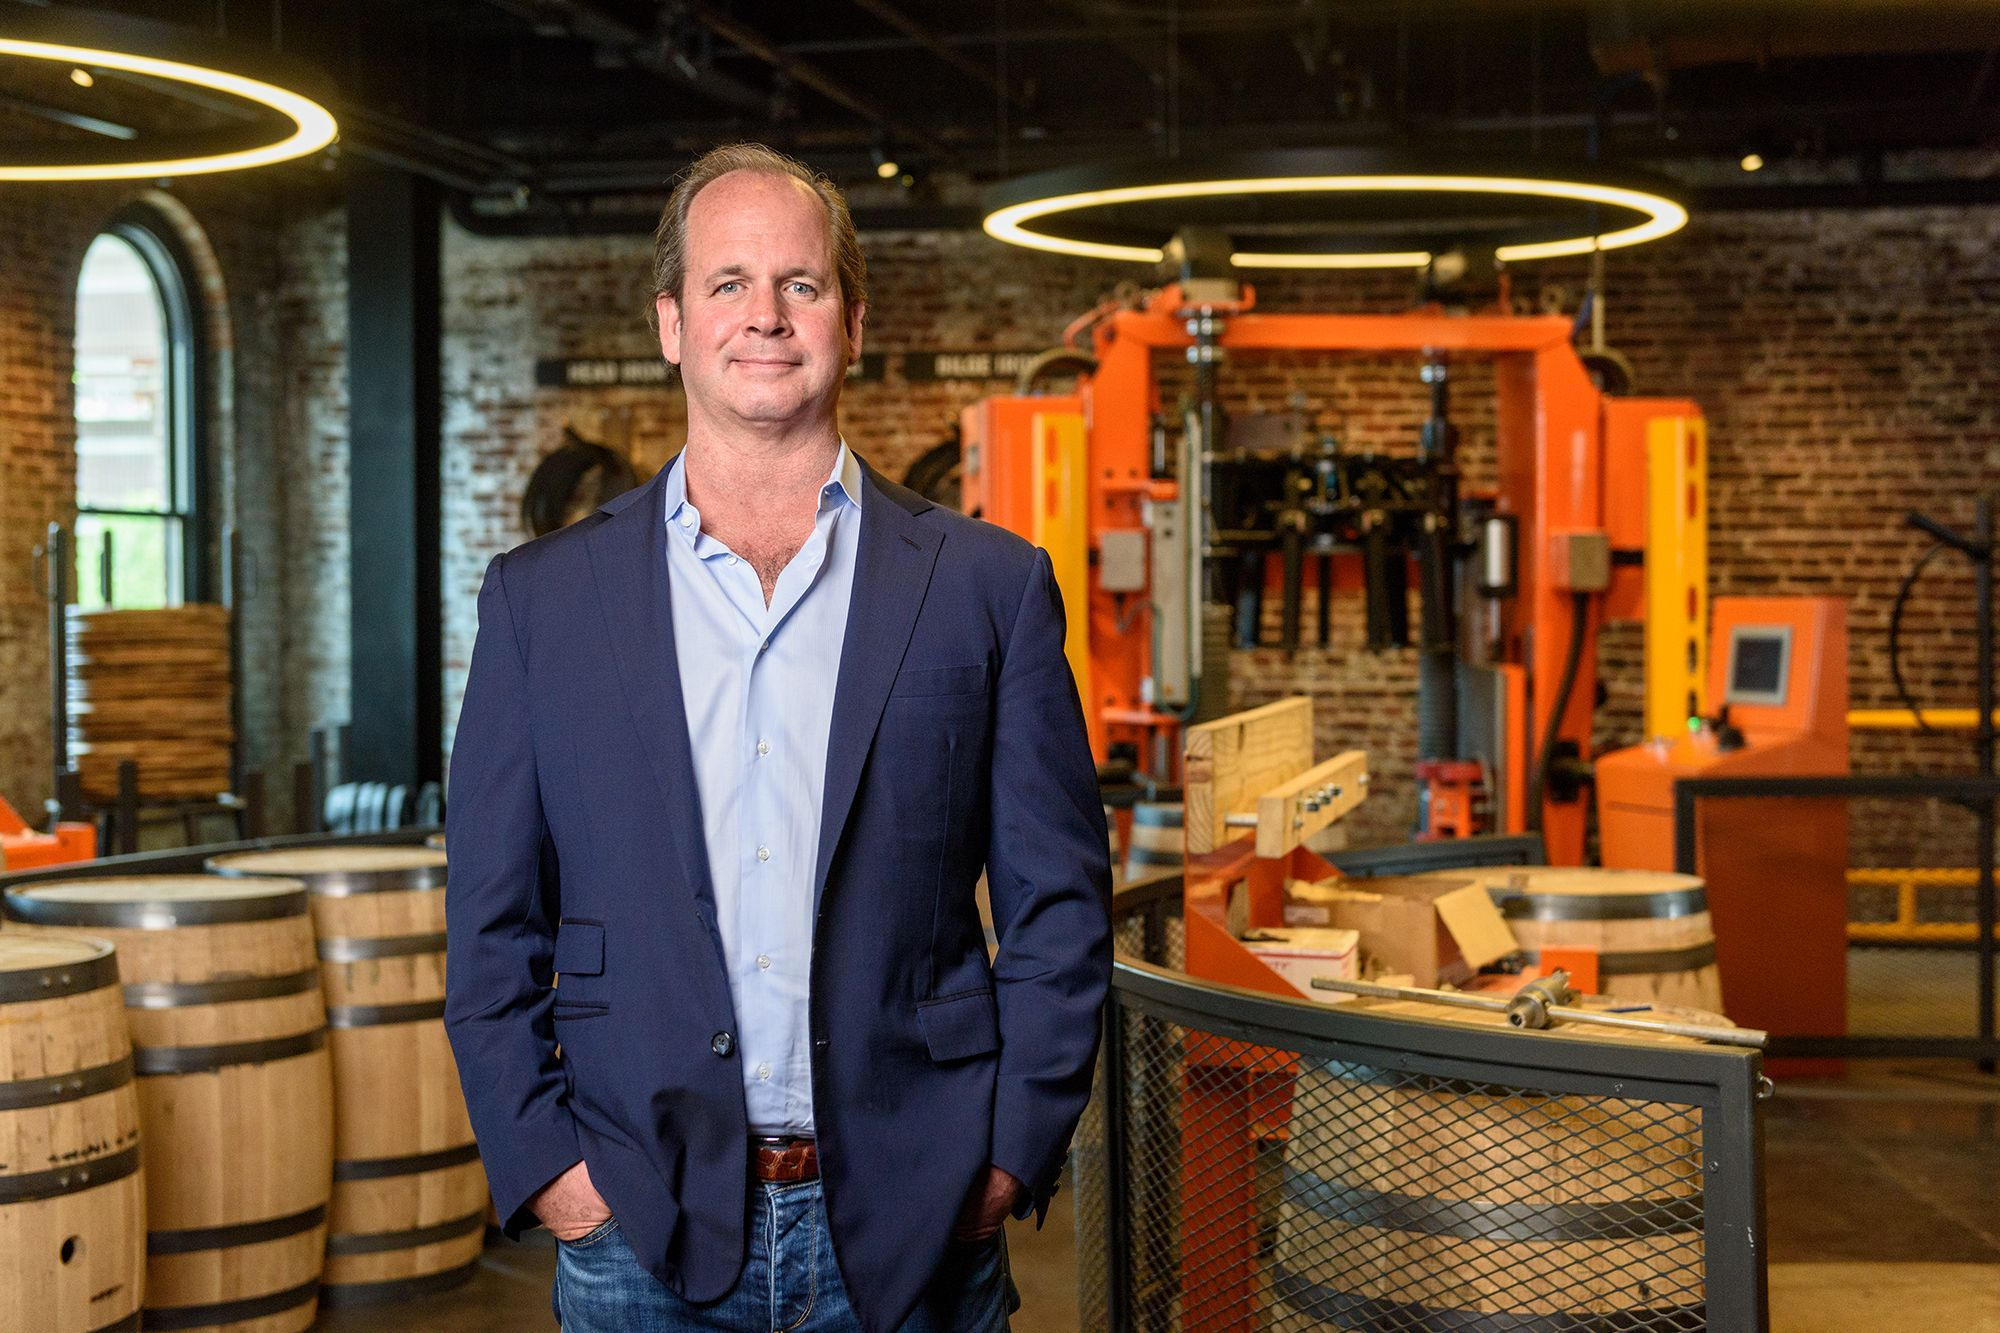 Campbell Brown poses in front of the barrel cooperage at the Old Forester Distillery.